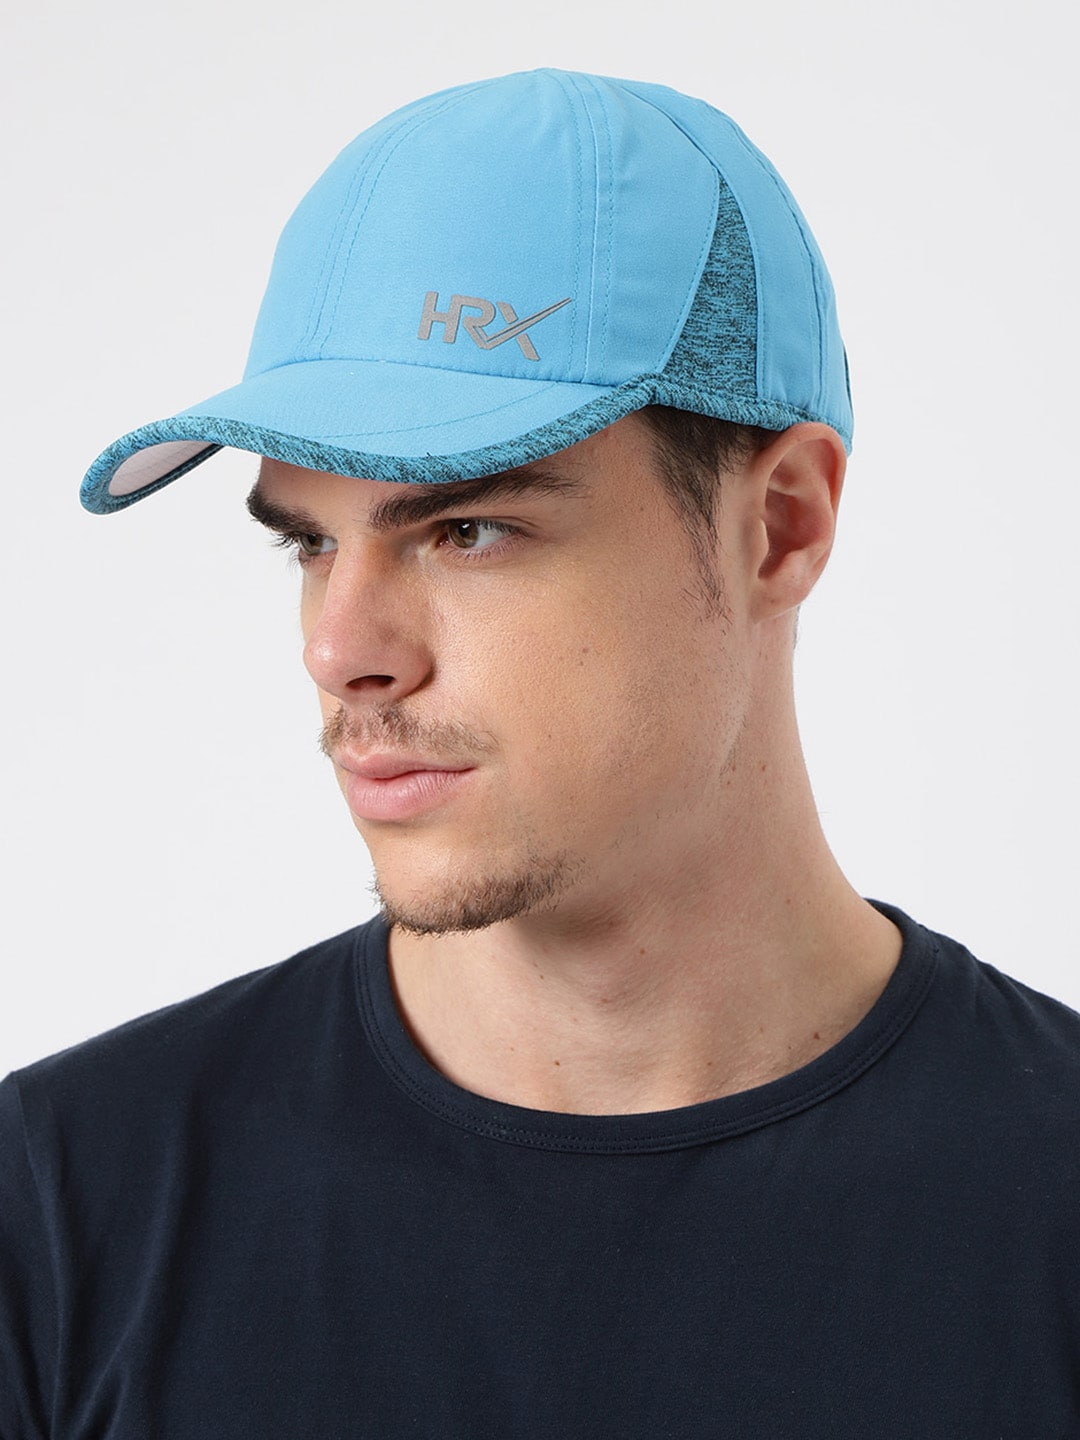 newest 3b91a d23cd Hrx By Hrithik Roshan By Hrithik Roshan Men Casuals Caps - Buy Hrx By Hrithik  Roshan By Hrithik Roshan Men Casuals Caps online in India